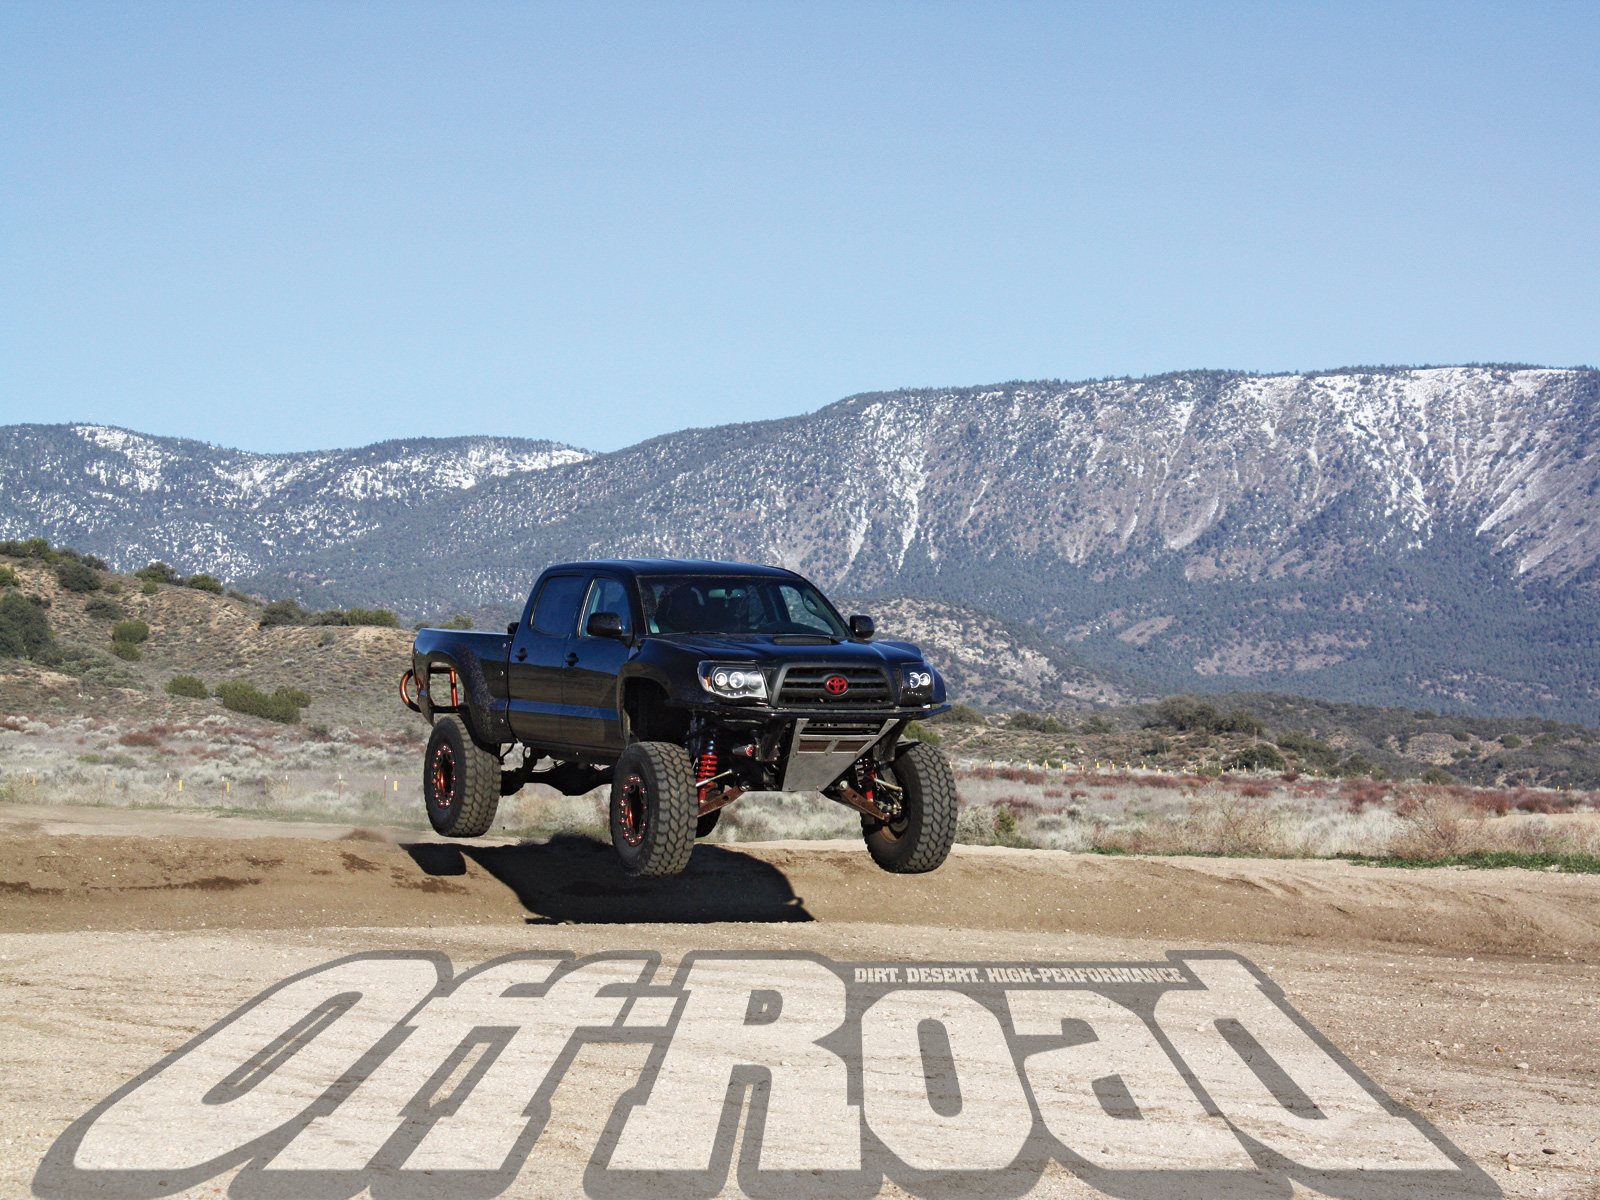 2008 Toyota Tacoma Diabolical Toy Wallpaper Front Angle Photo 1 1600x1200